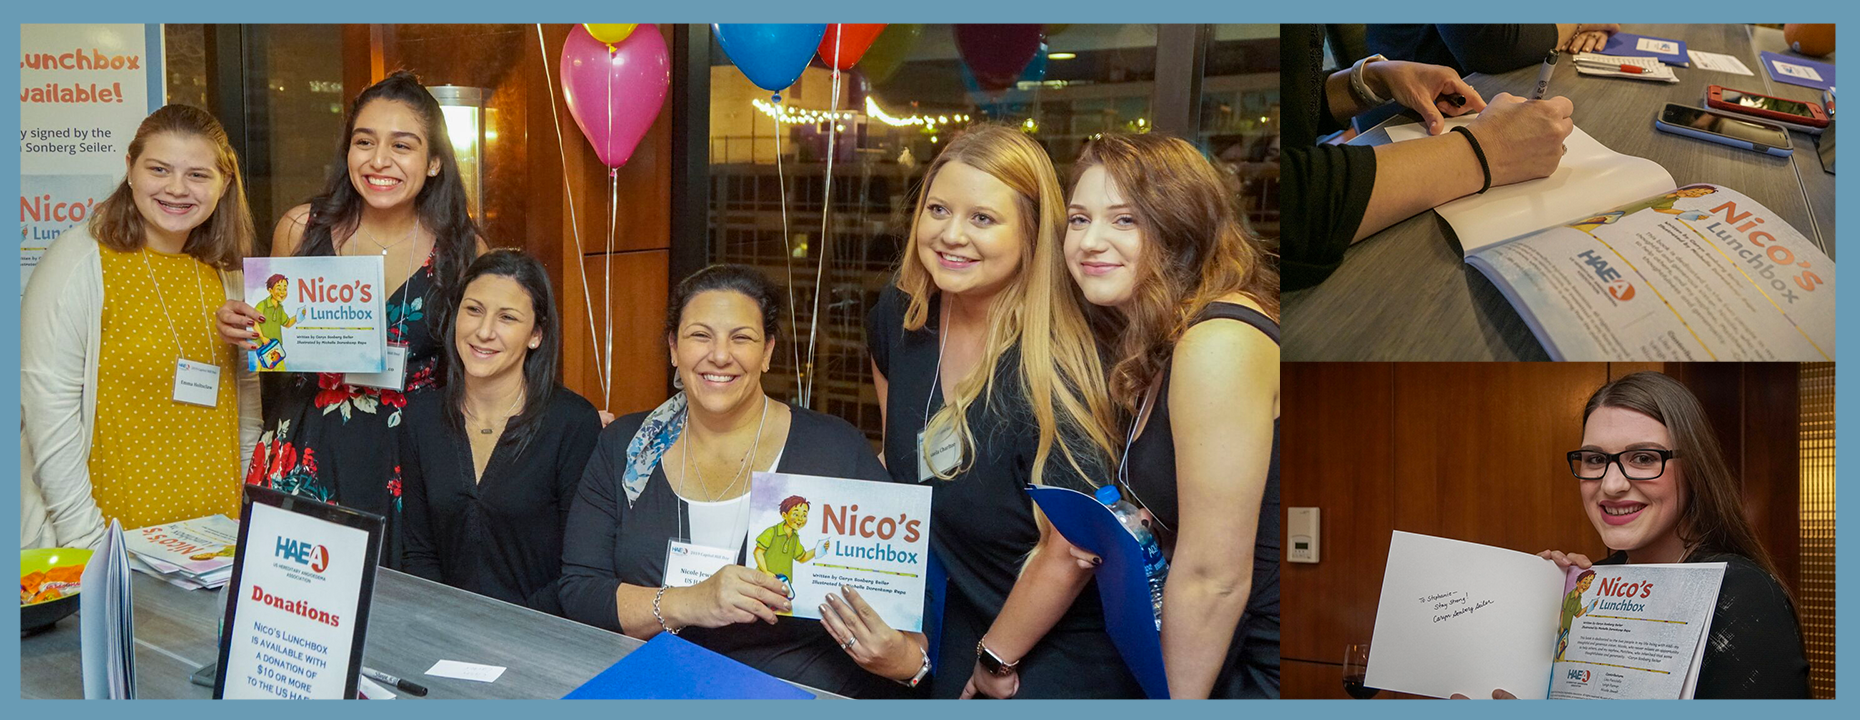 Nico's Lunchbox Book Signing